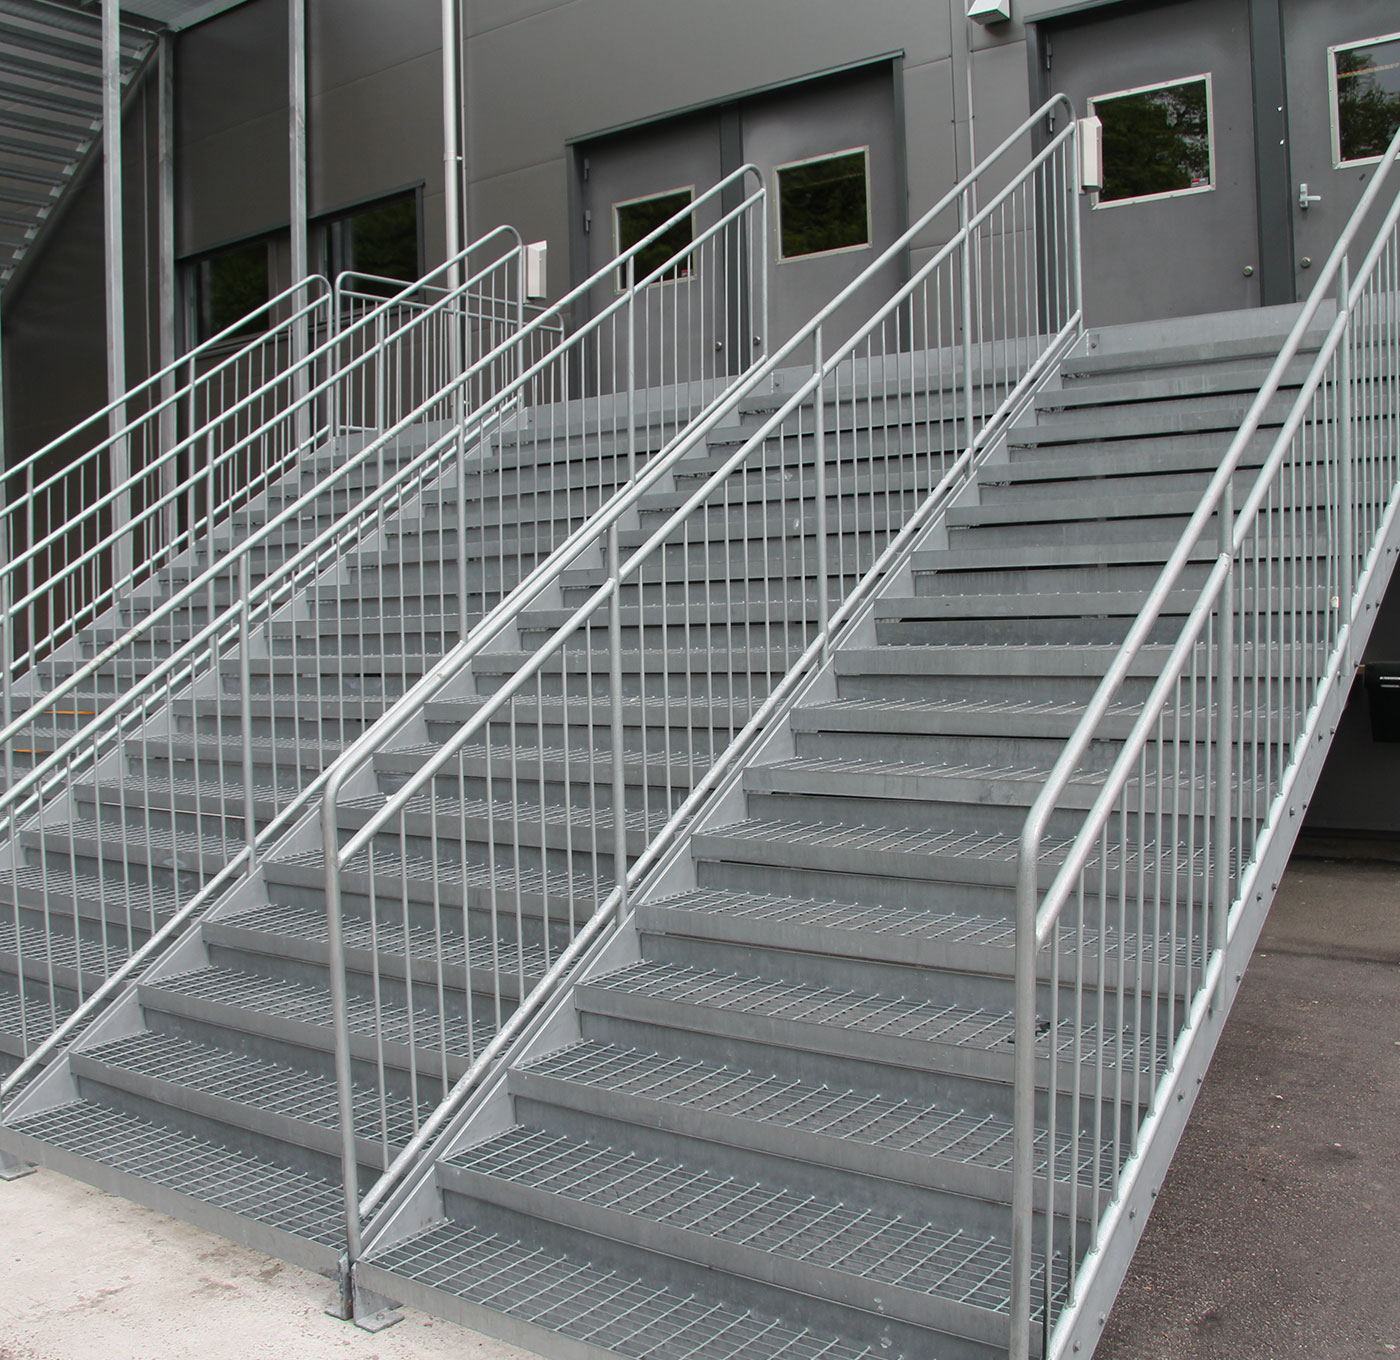 Childsafe straight staircase with steps of grating